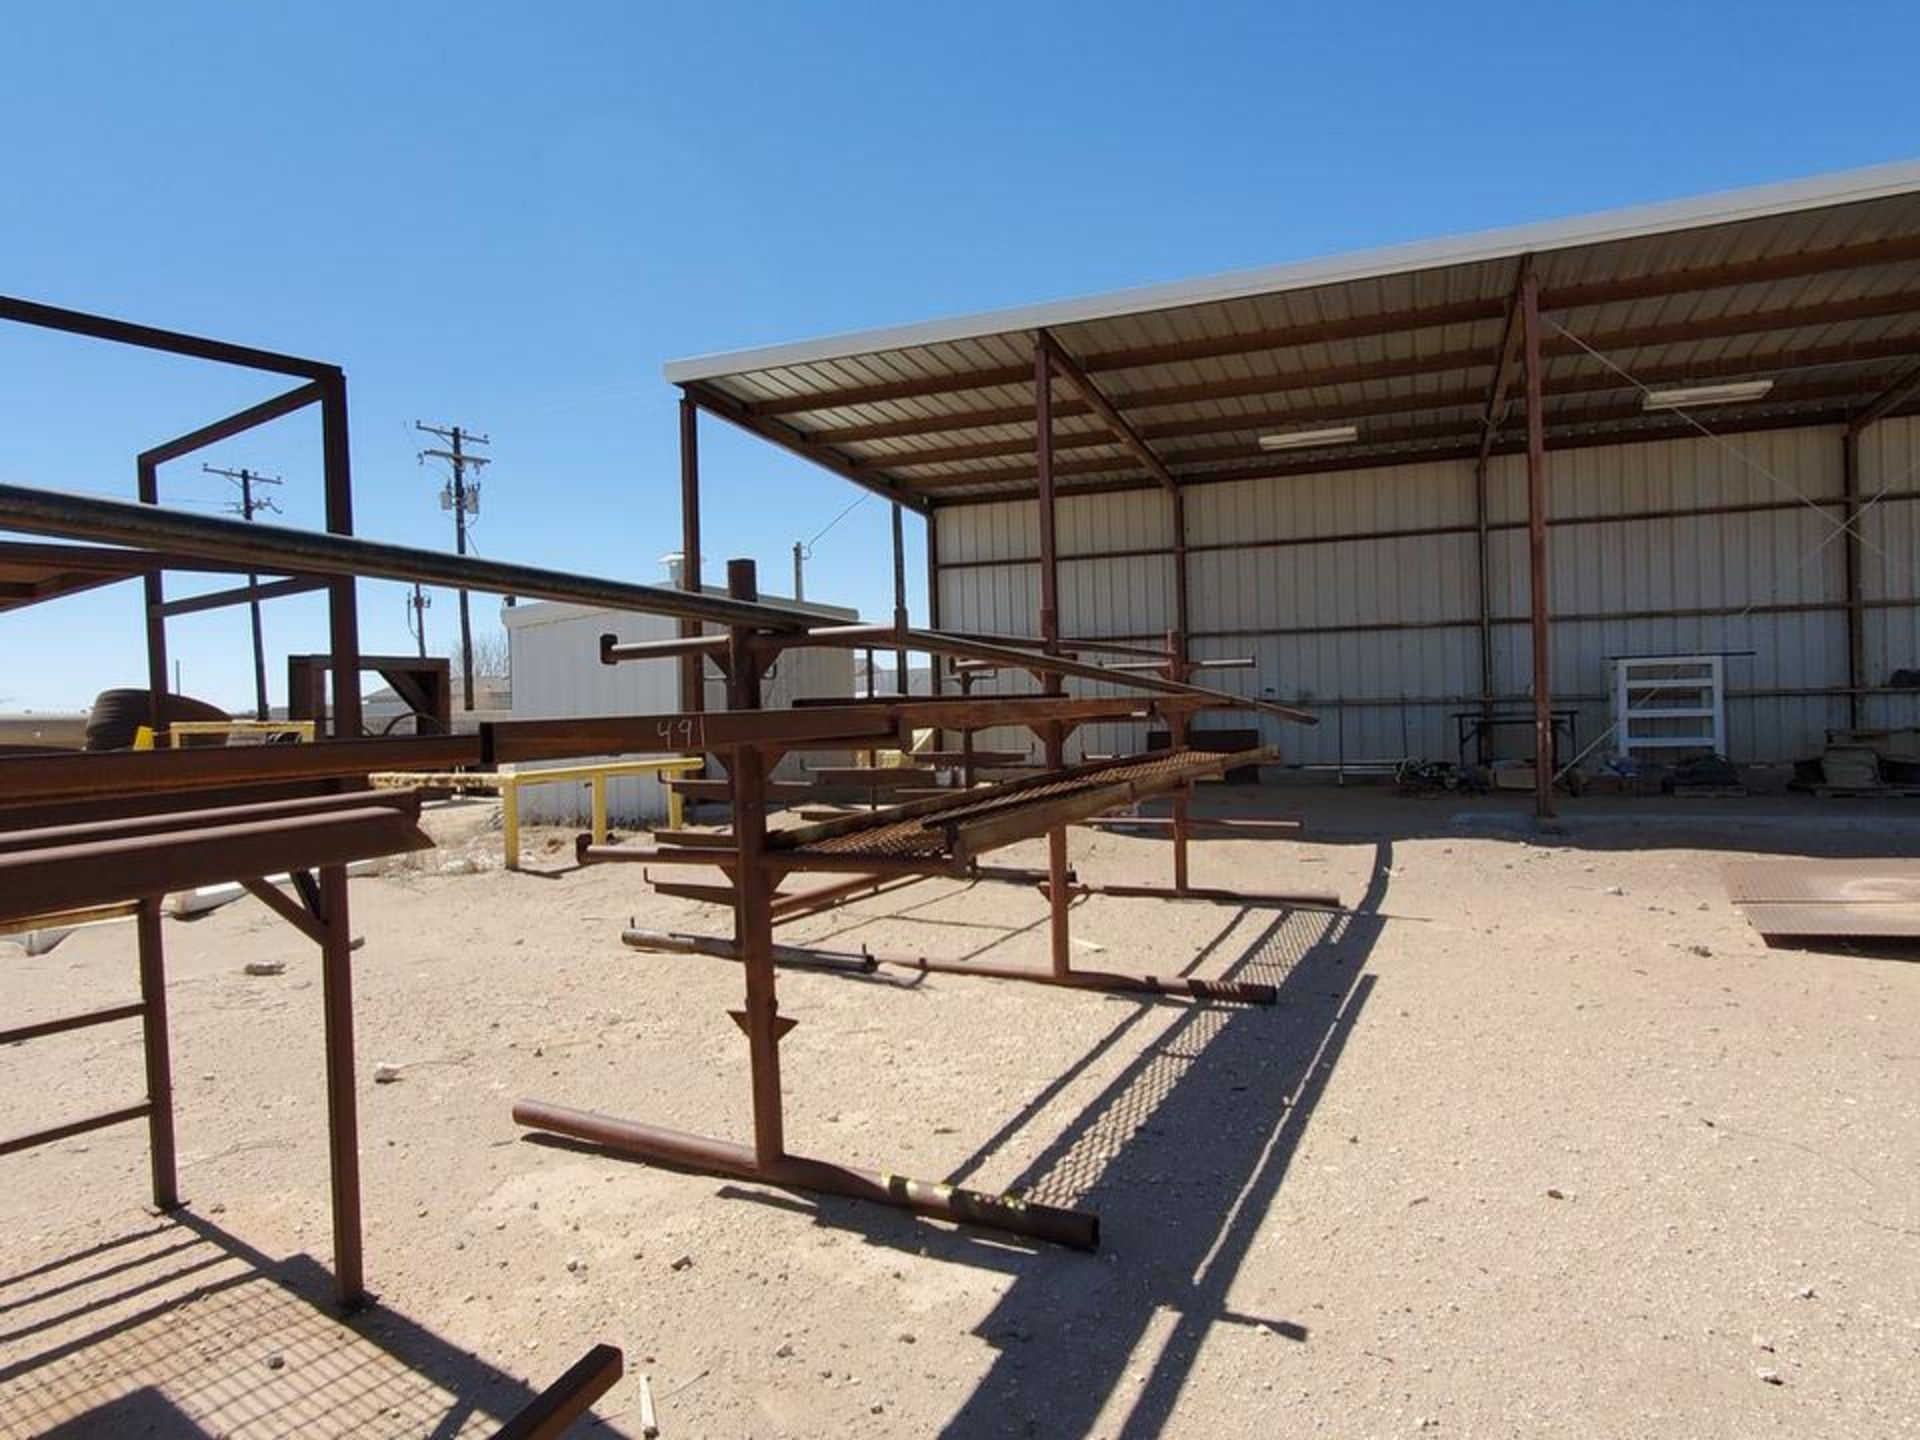 """(3) 3-Post Doublesided Cantilever Racks (2) 10' x 6' x 6'6"""", (1) 17' x 7' x 6'6"""" - Image 9 of 17"""